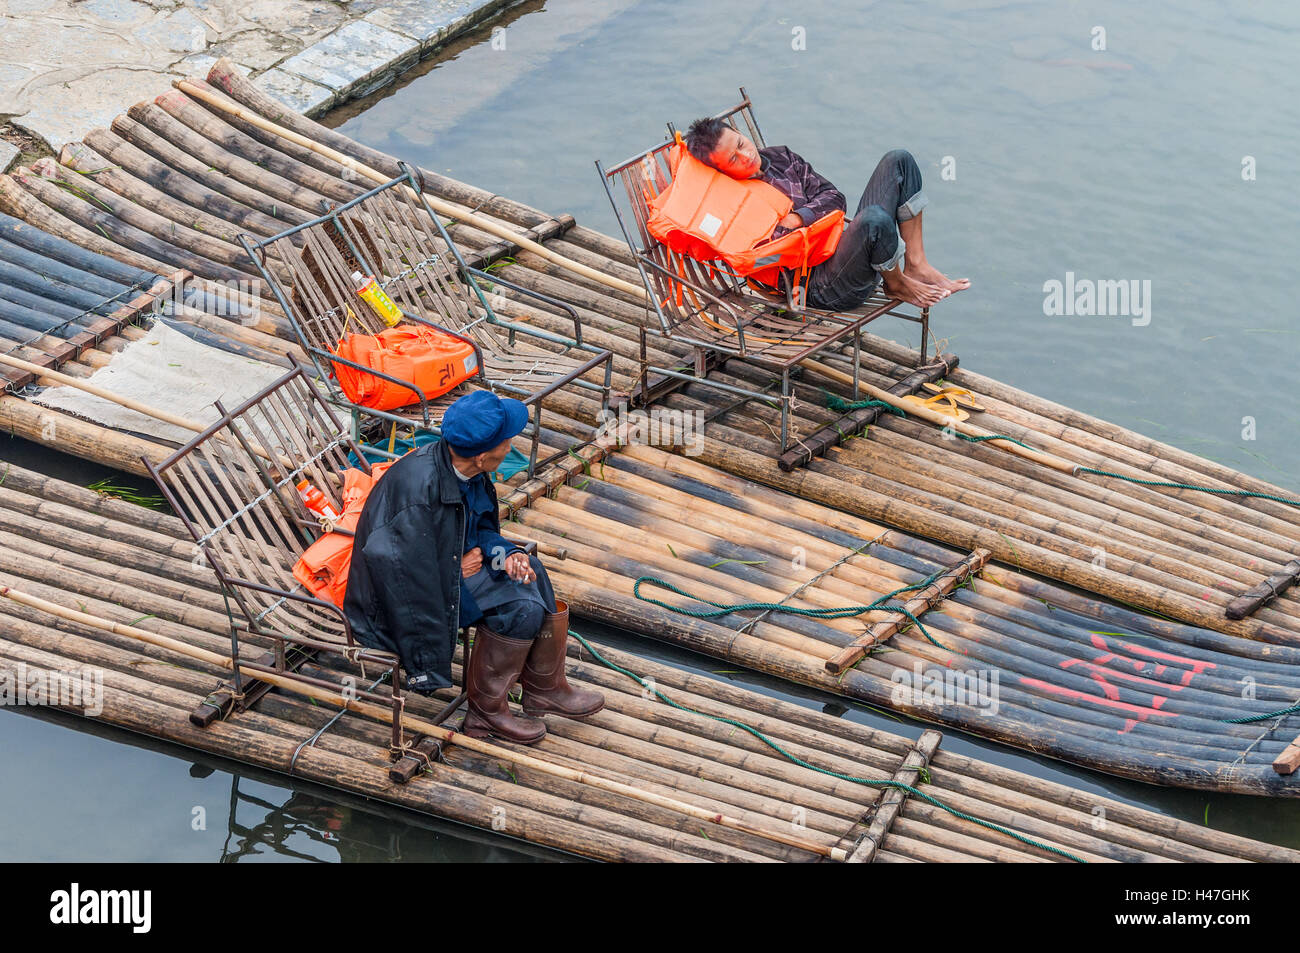 Boaters rest waiting for tourists on their bamboo raft on the bank of the Li River, Yangshuo - Stock Image